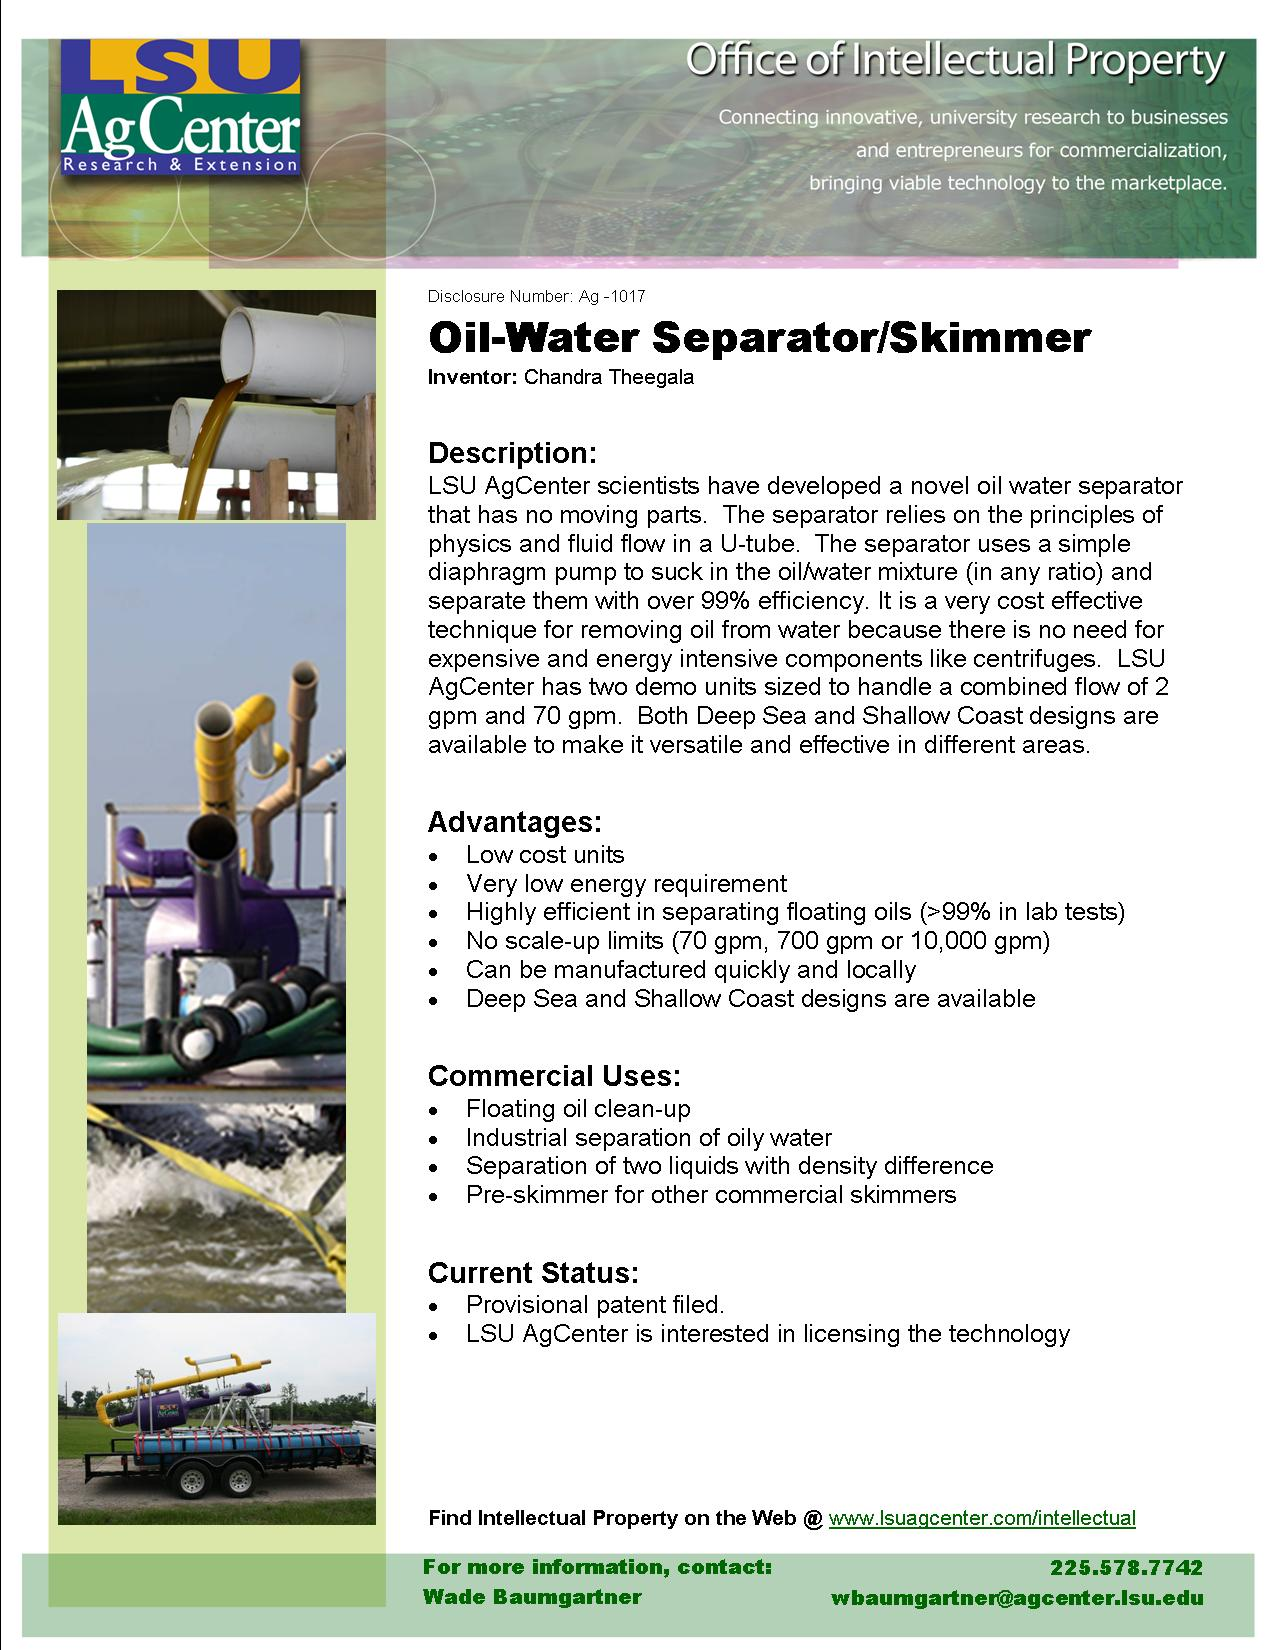 Efficient Oil-water Separator